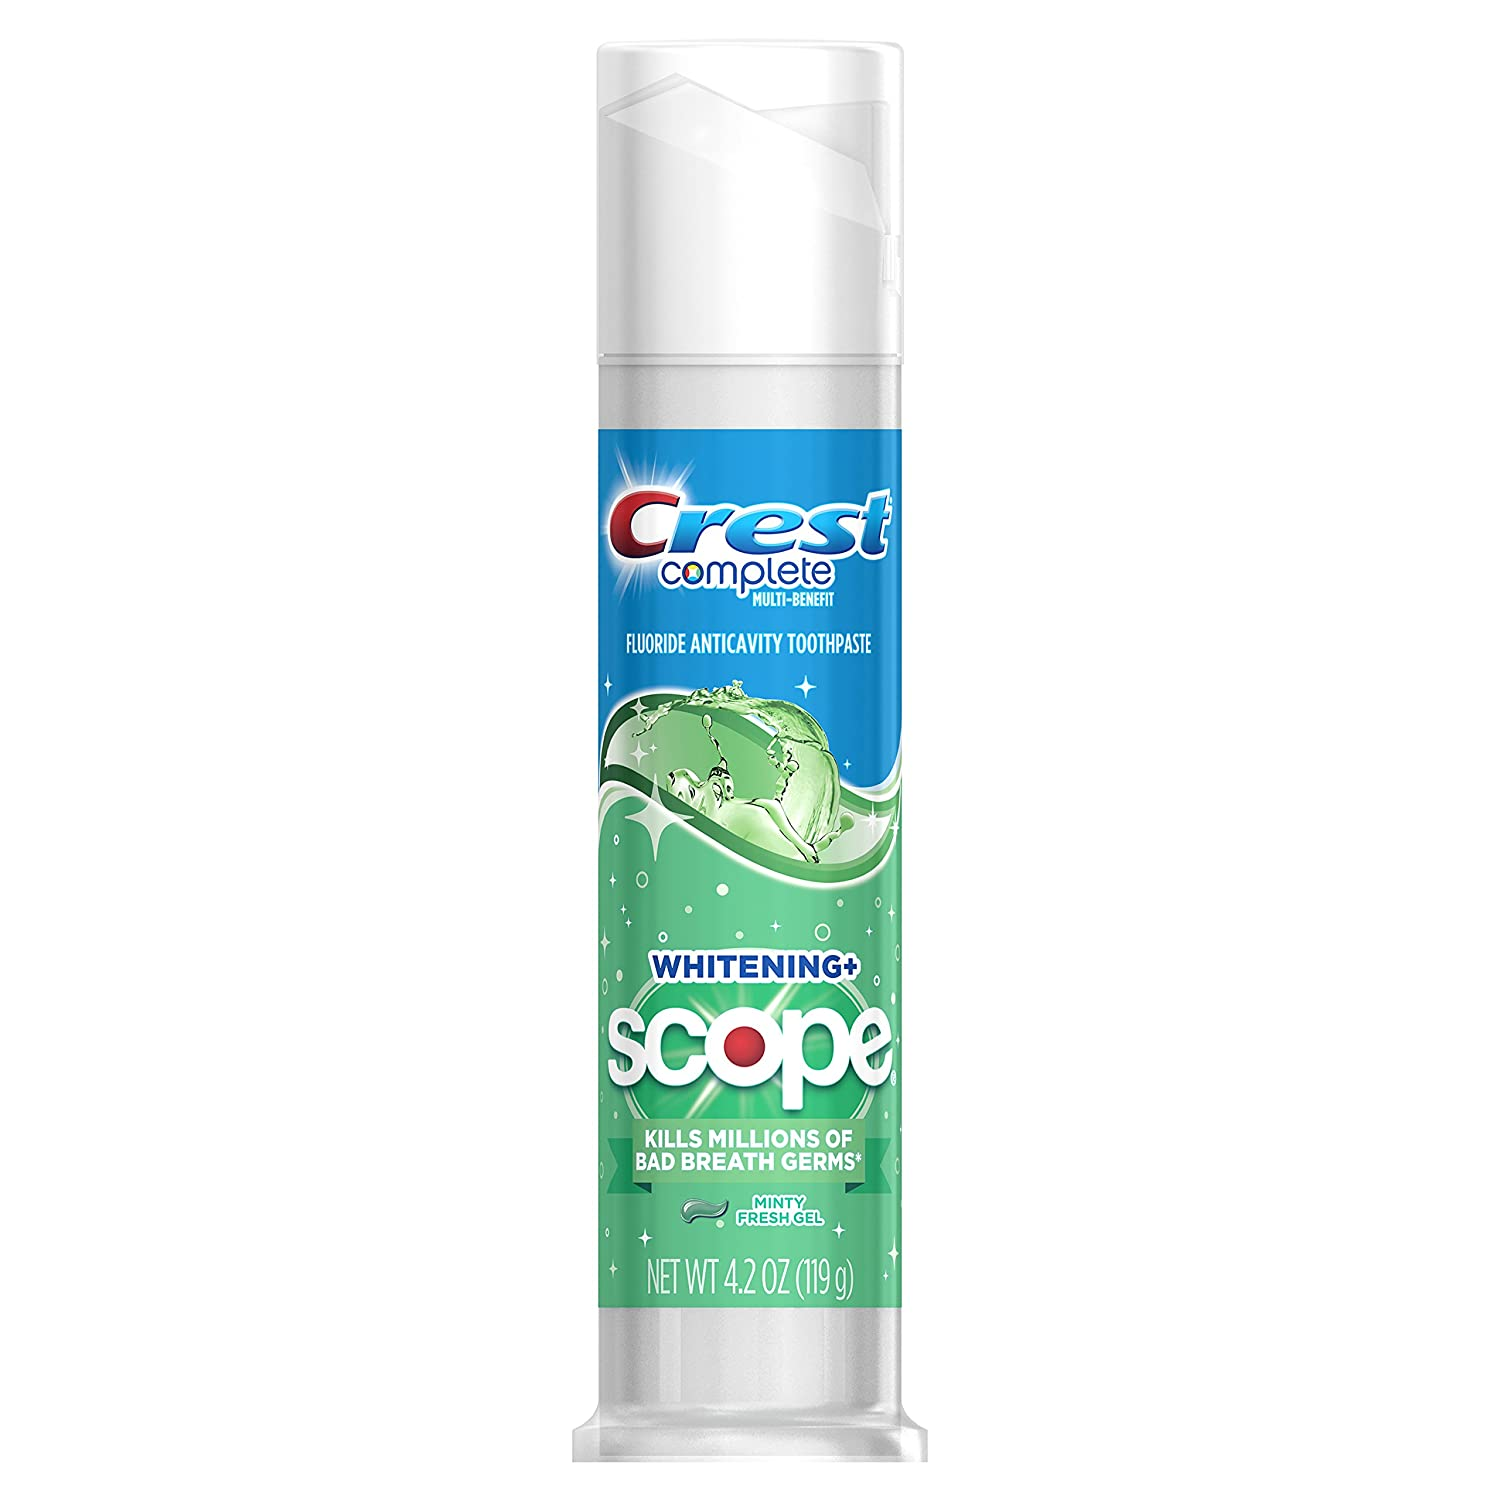 Crest Complete Whitening + Scope Multi-Benefit Minty Fresh Striped Toothpaste, 4.2 oz